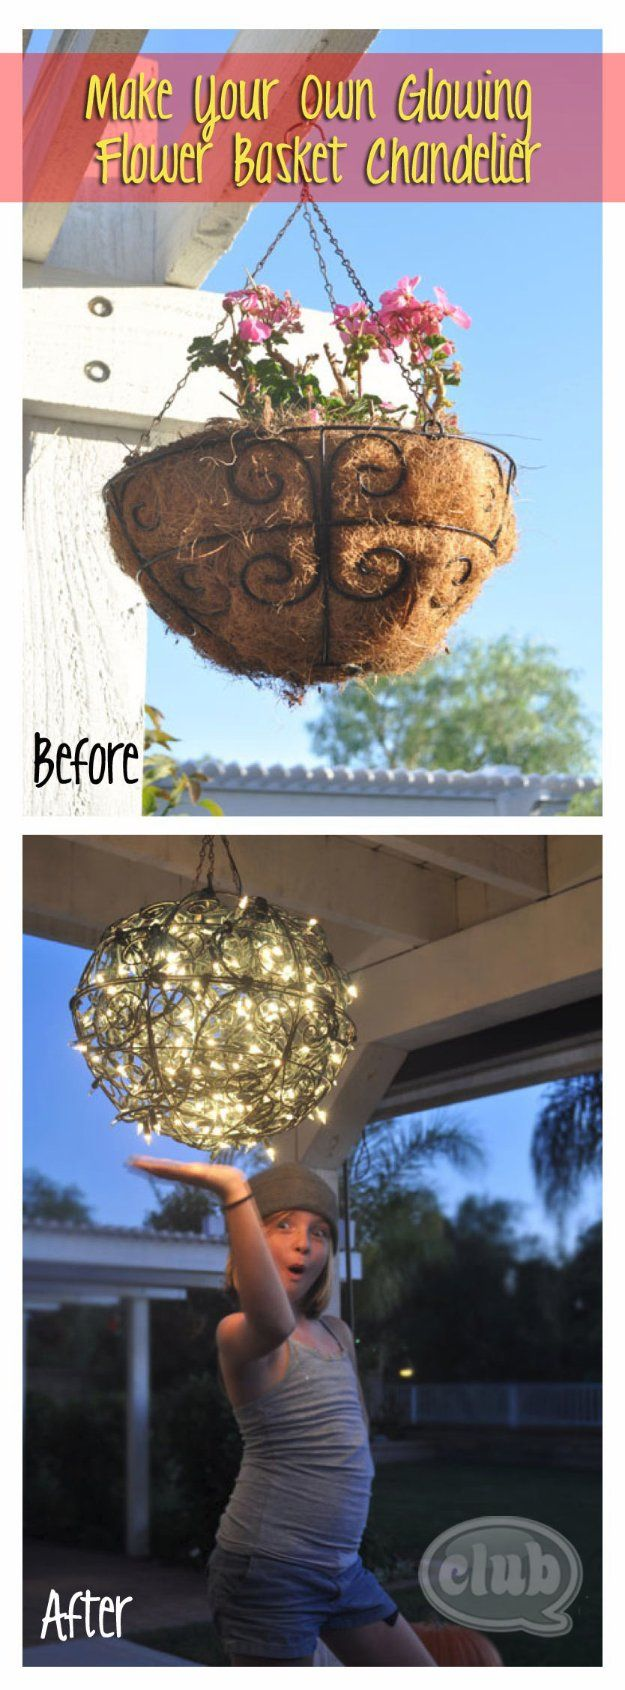 DIY Porch and Patio Ideas - DIY Flower Basket Chandelier - Decor Projects and Furniture Tutorials You Can Build for the Outdoors -Swings, Bench, Cushions, Chairs, Daybeds and Pallet Signs  http://diyjoy.com/diy-porch-patio-decor-ideas